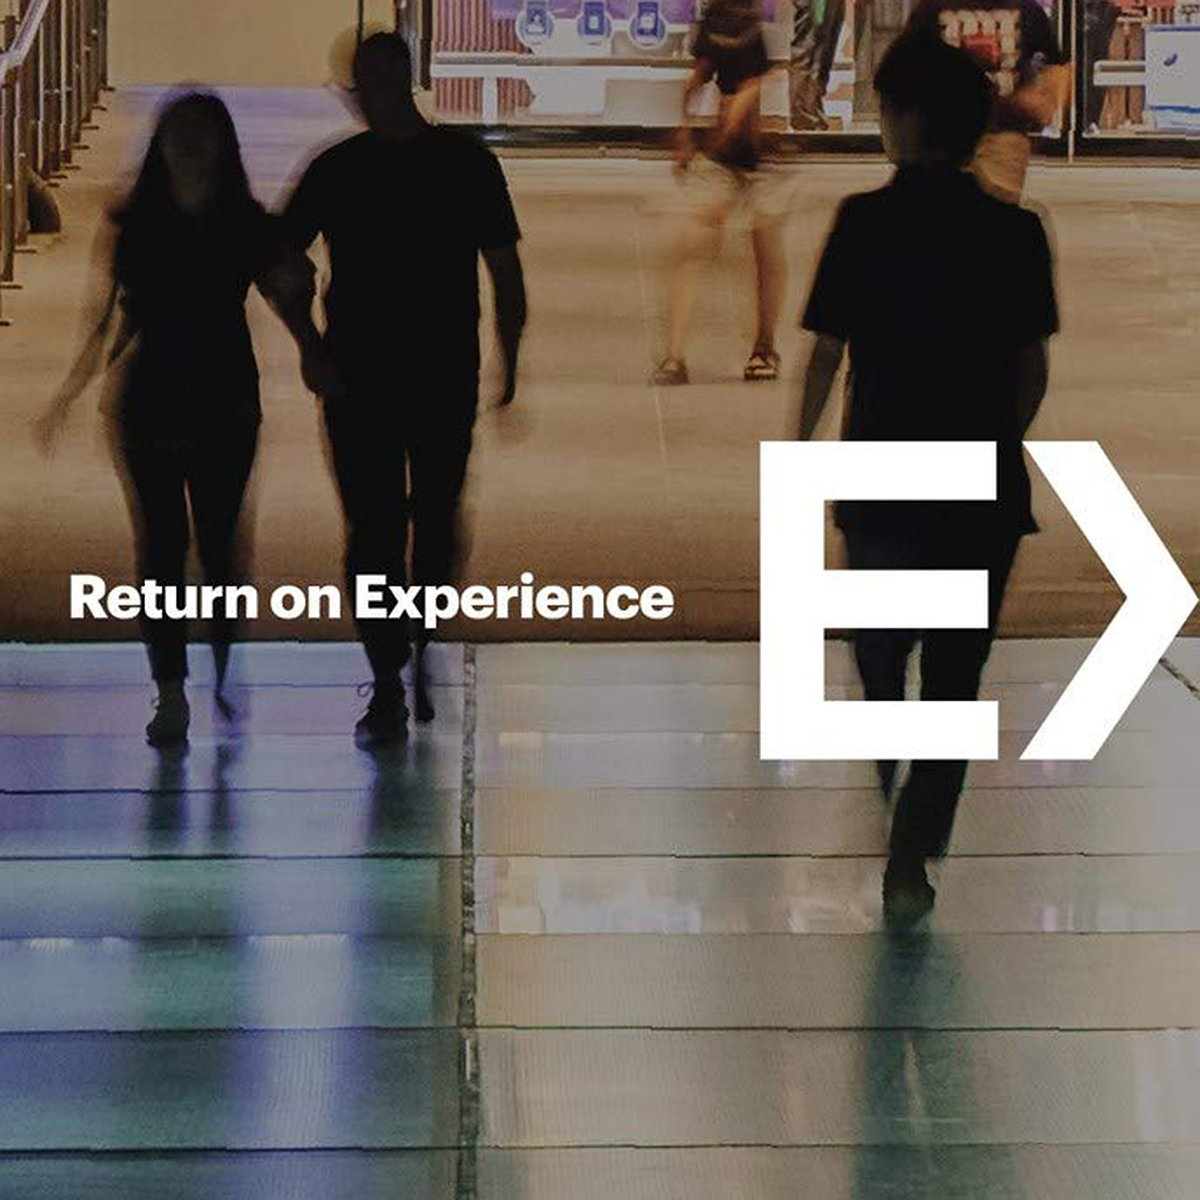 Return on Experience - A Conversation with the Authors